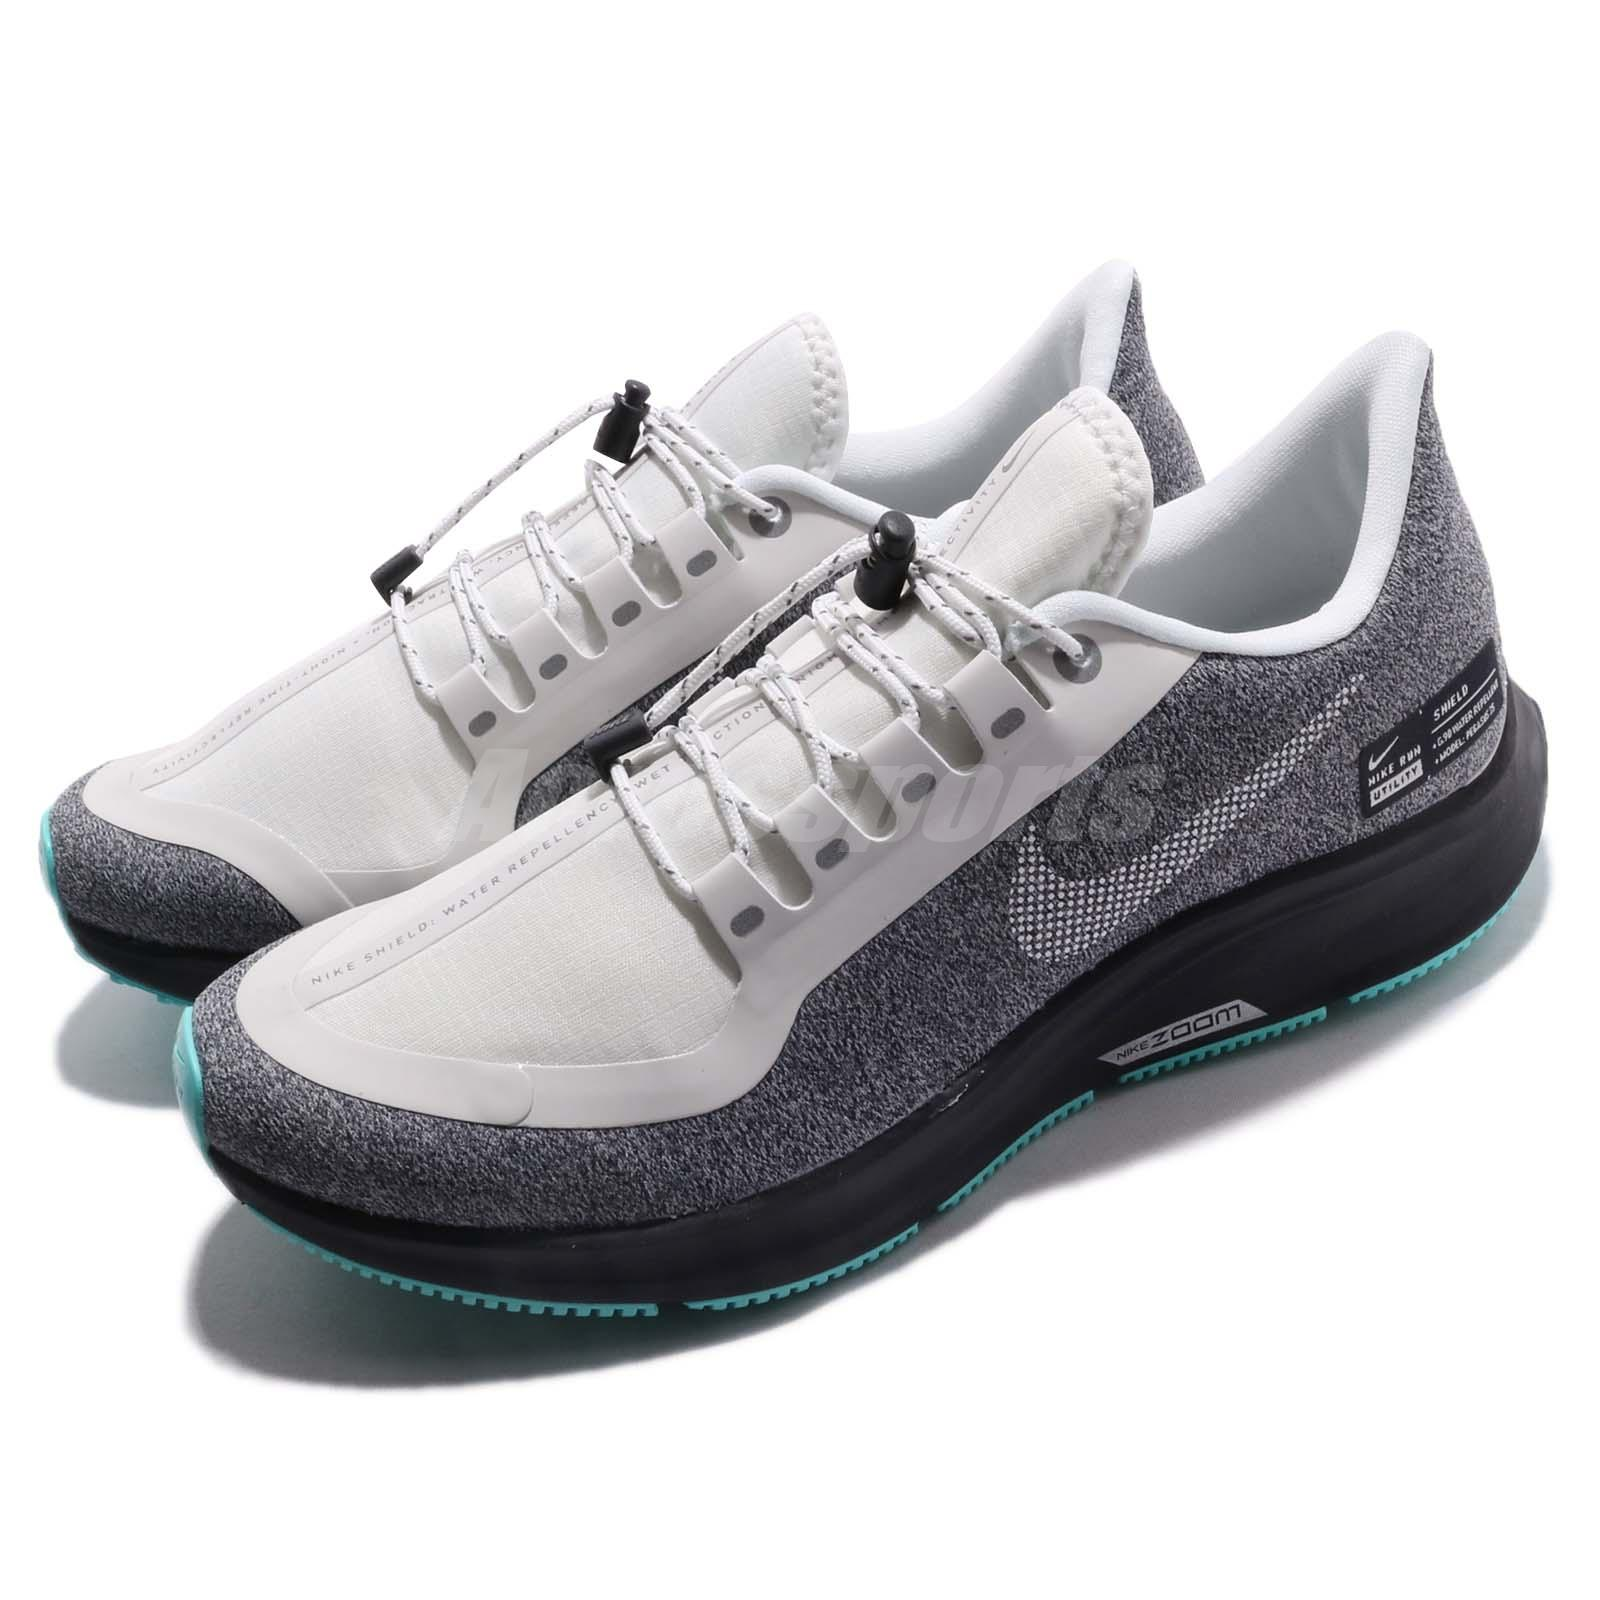 8b3e20ccfe87 Details about Nike Wmns Air Zoom Pegasus 35 RN SHLD White Grey Women Running  Shoes AA1644-100